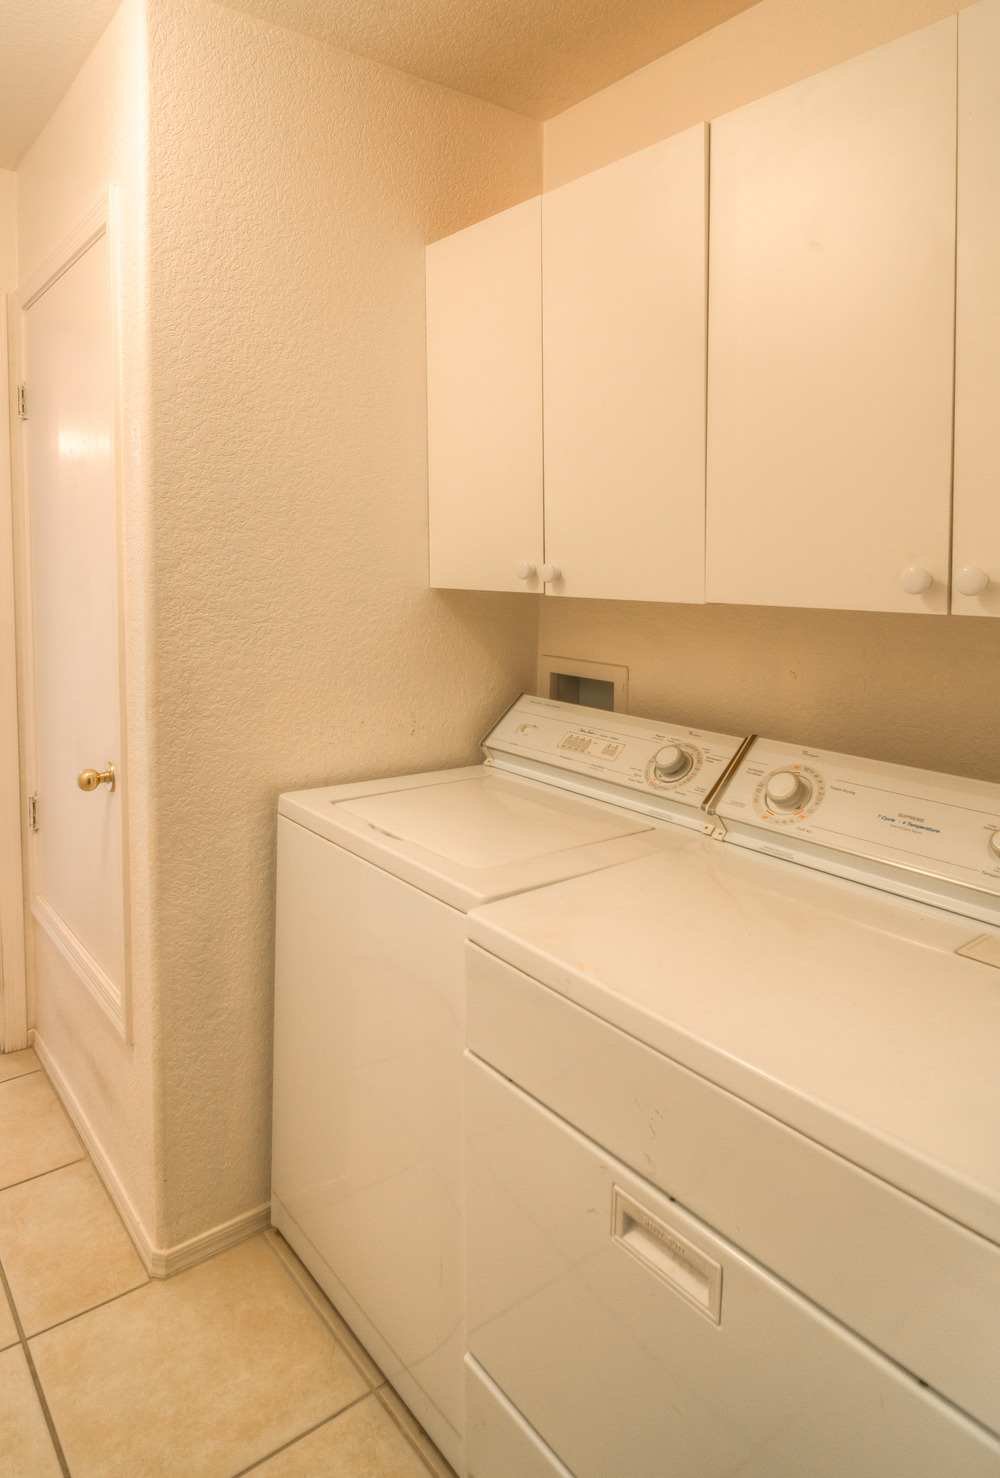 40 Laundry Room photo b.jpg